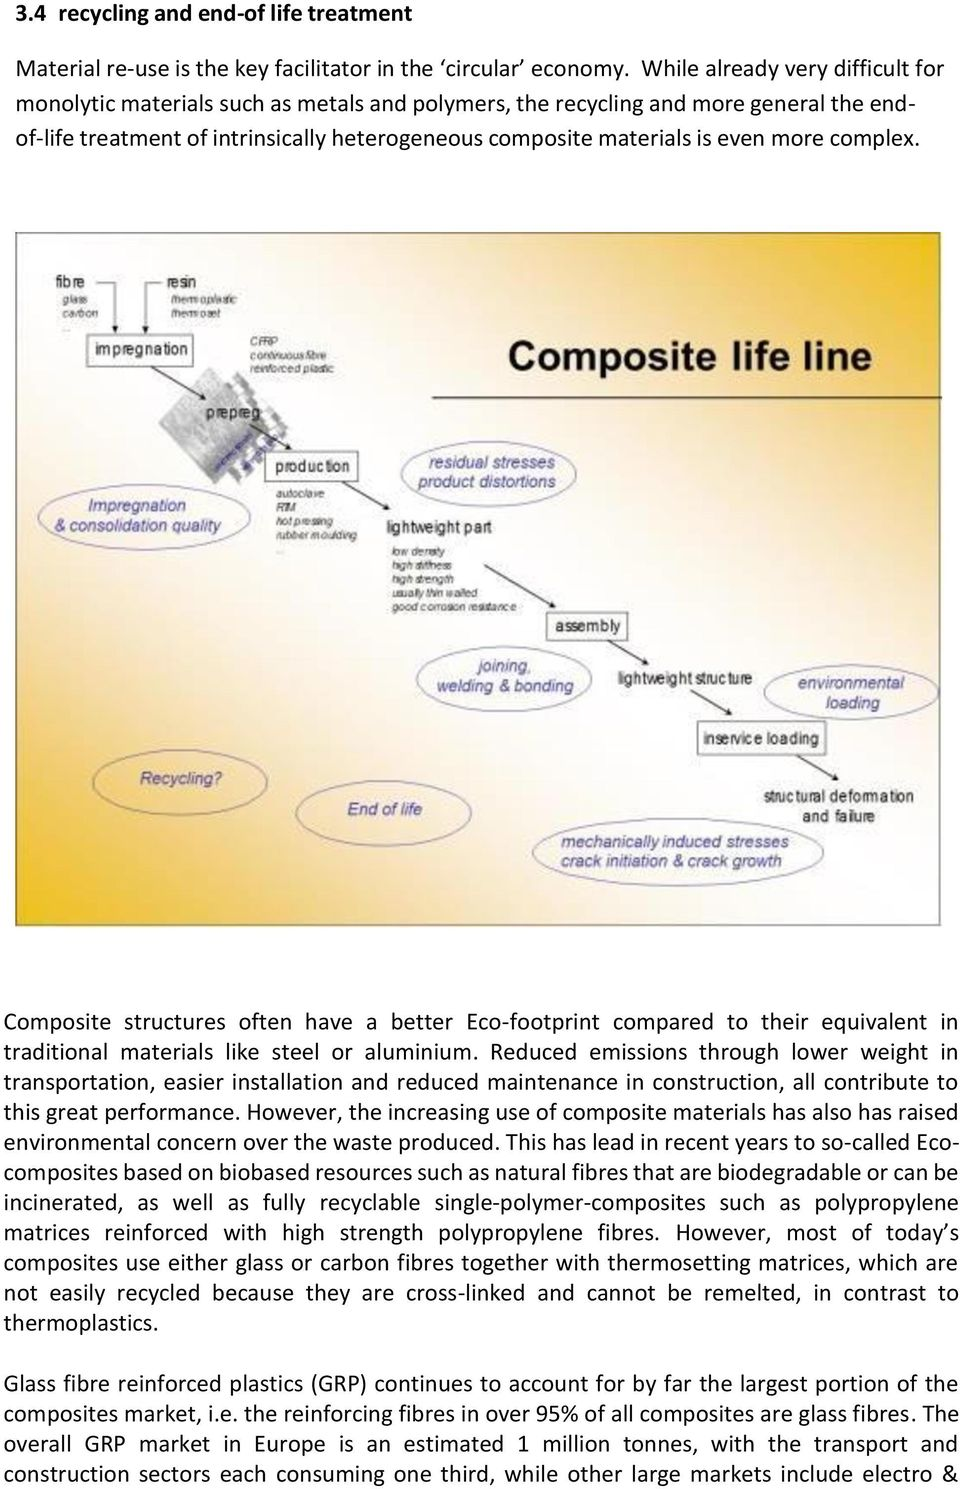 more complex. Composite structures often have a better Eco-footprint compared to their equivalent in traditional materials like steel or aluminium.